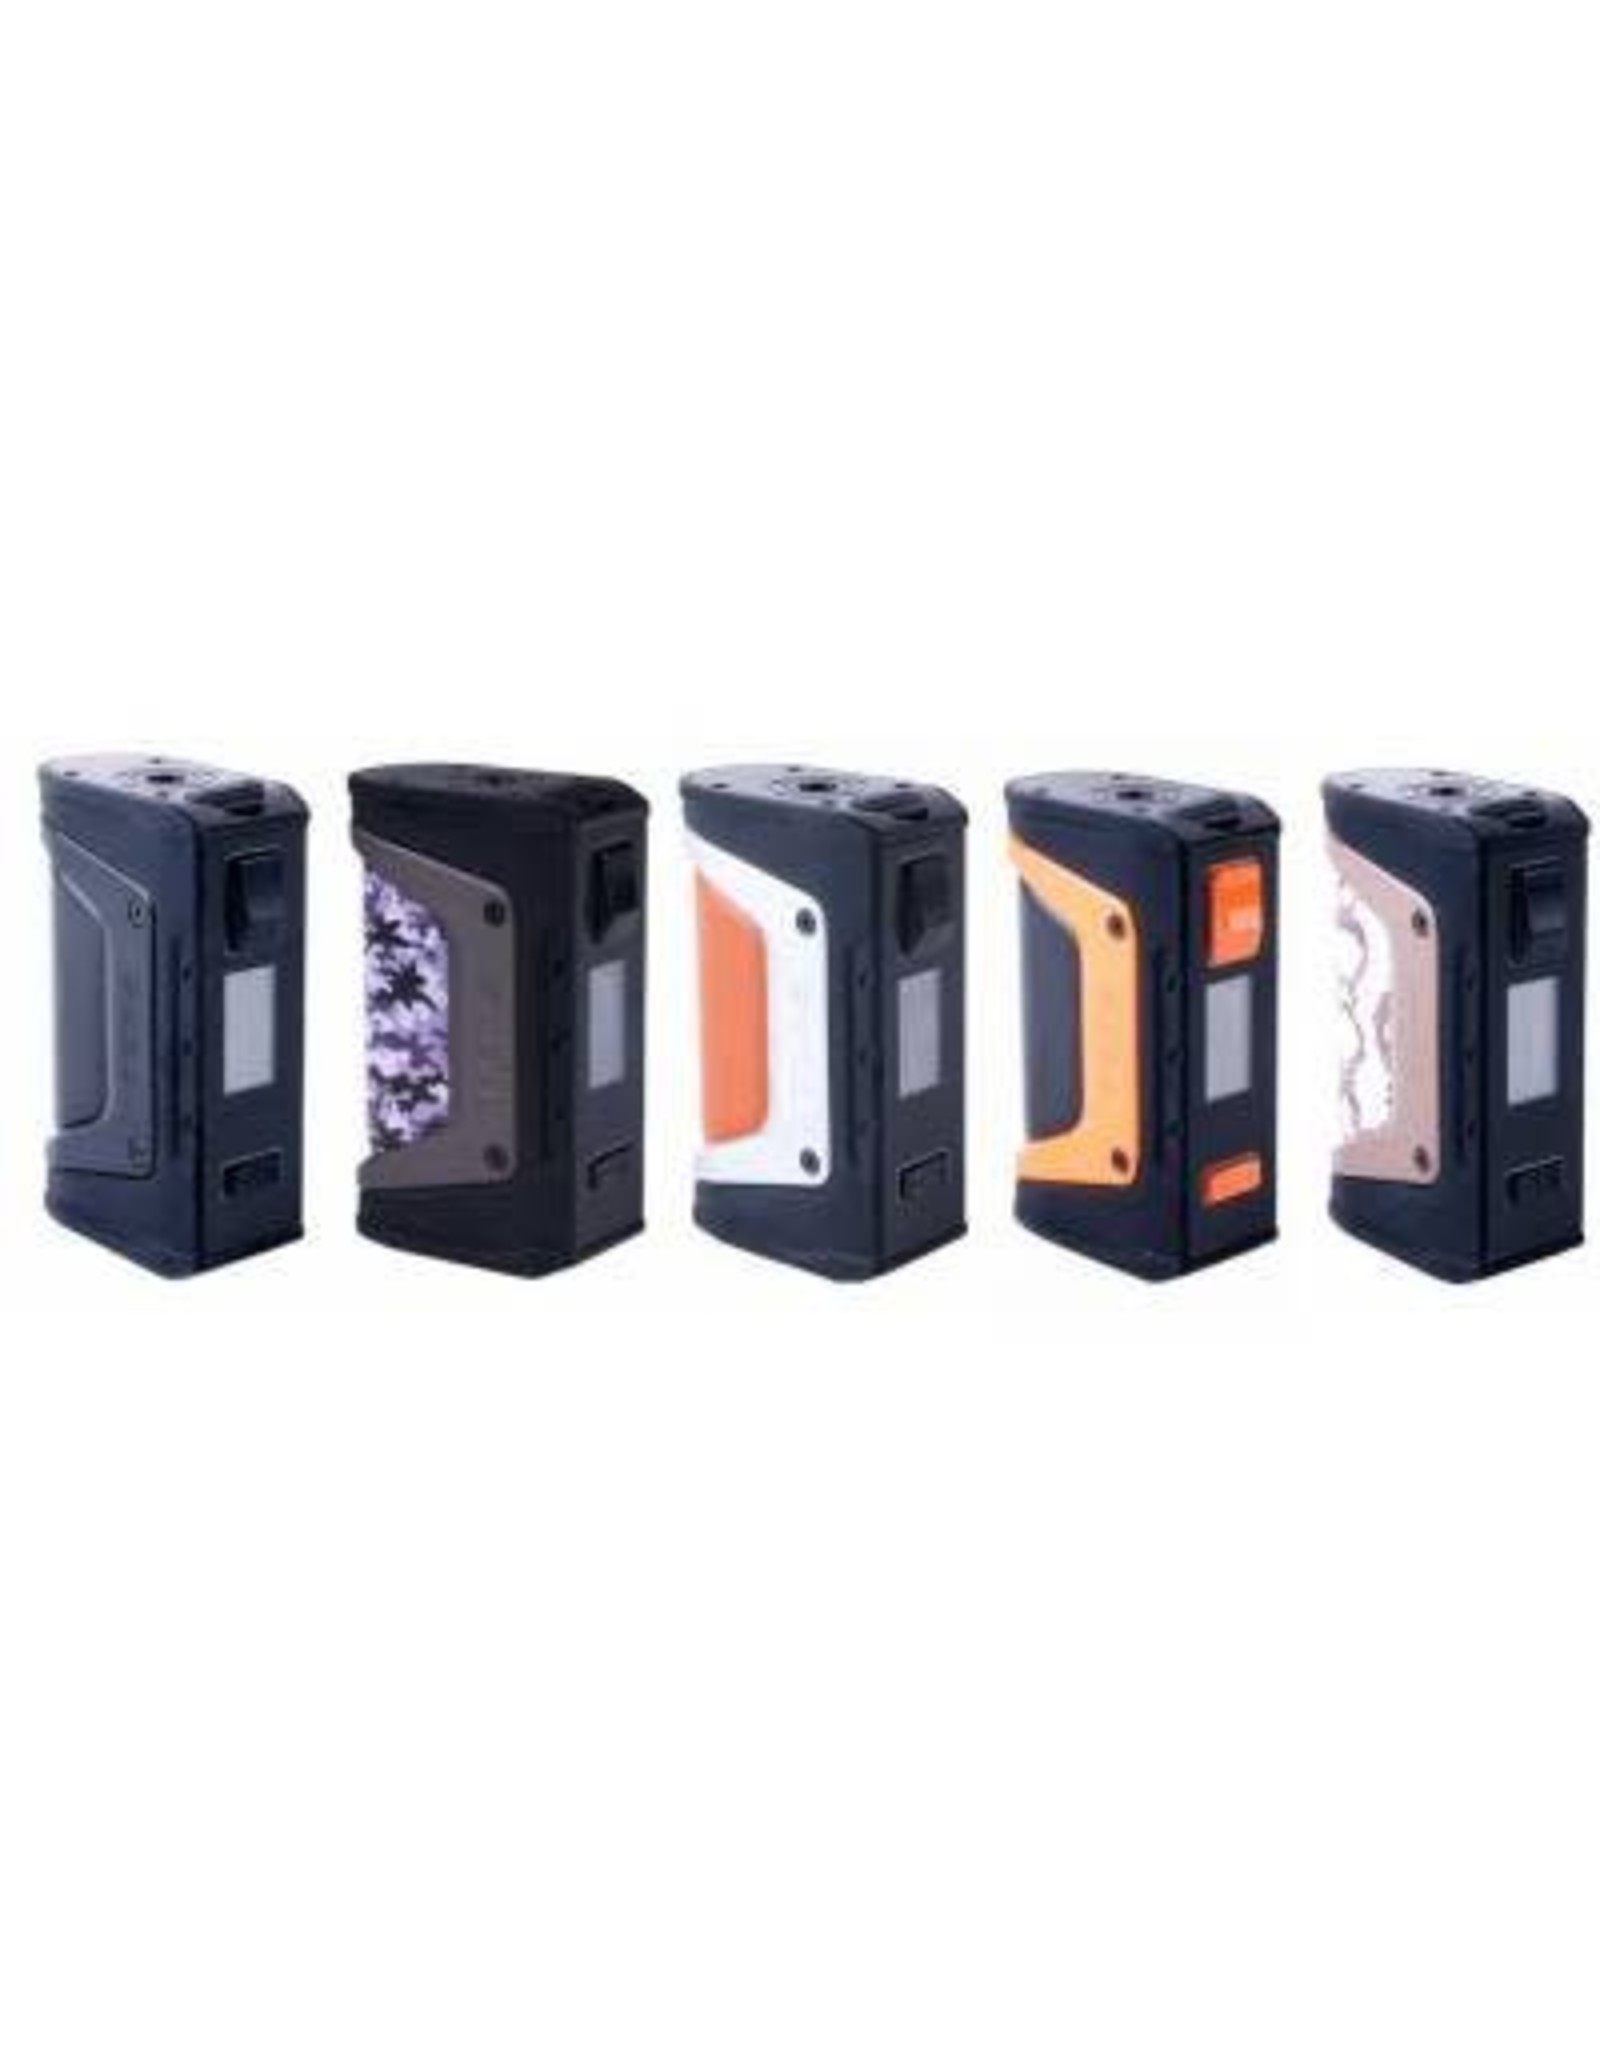 Geek Vape Aegis Legend Mod Only